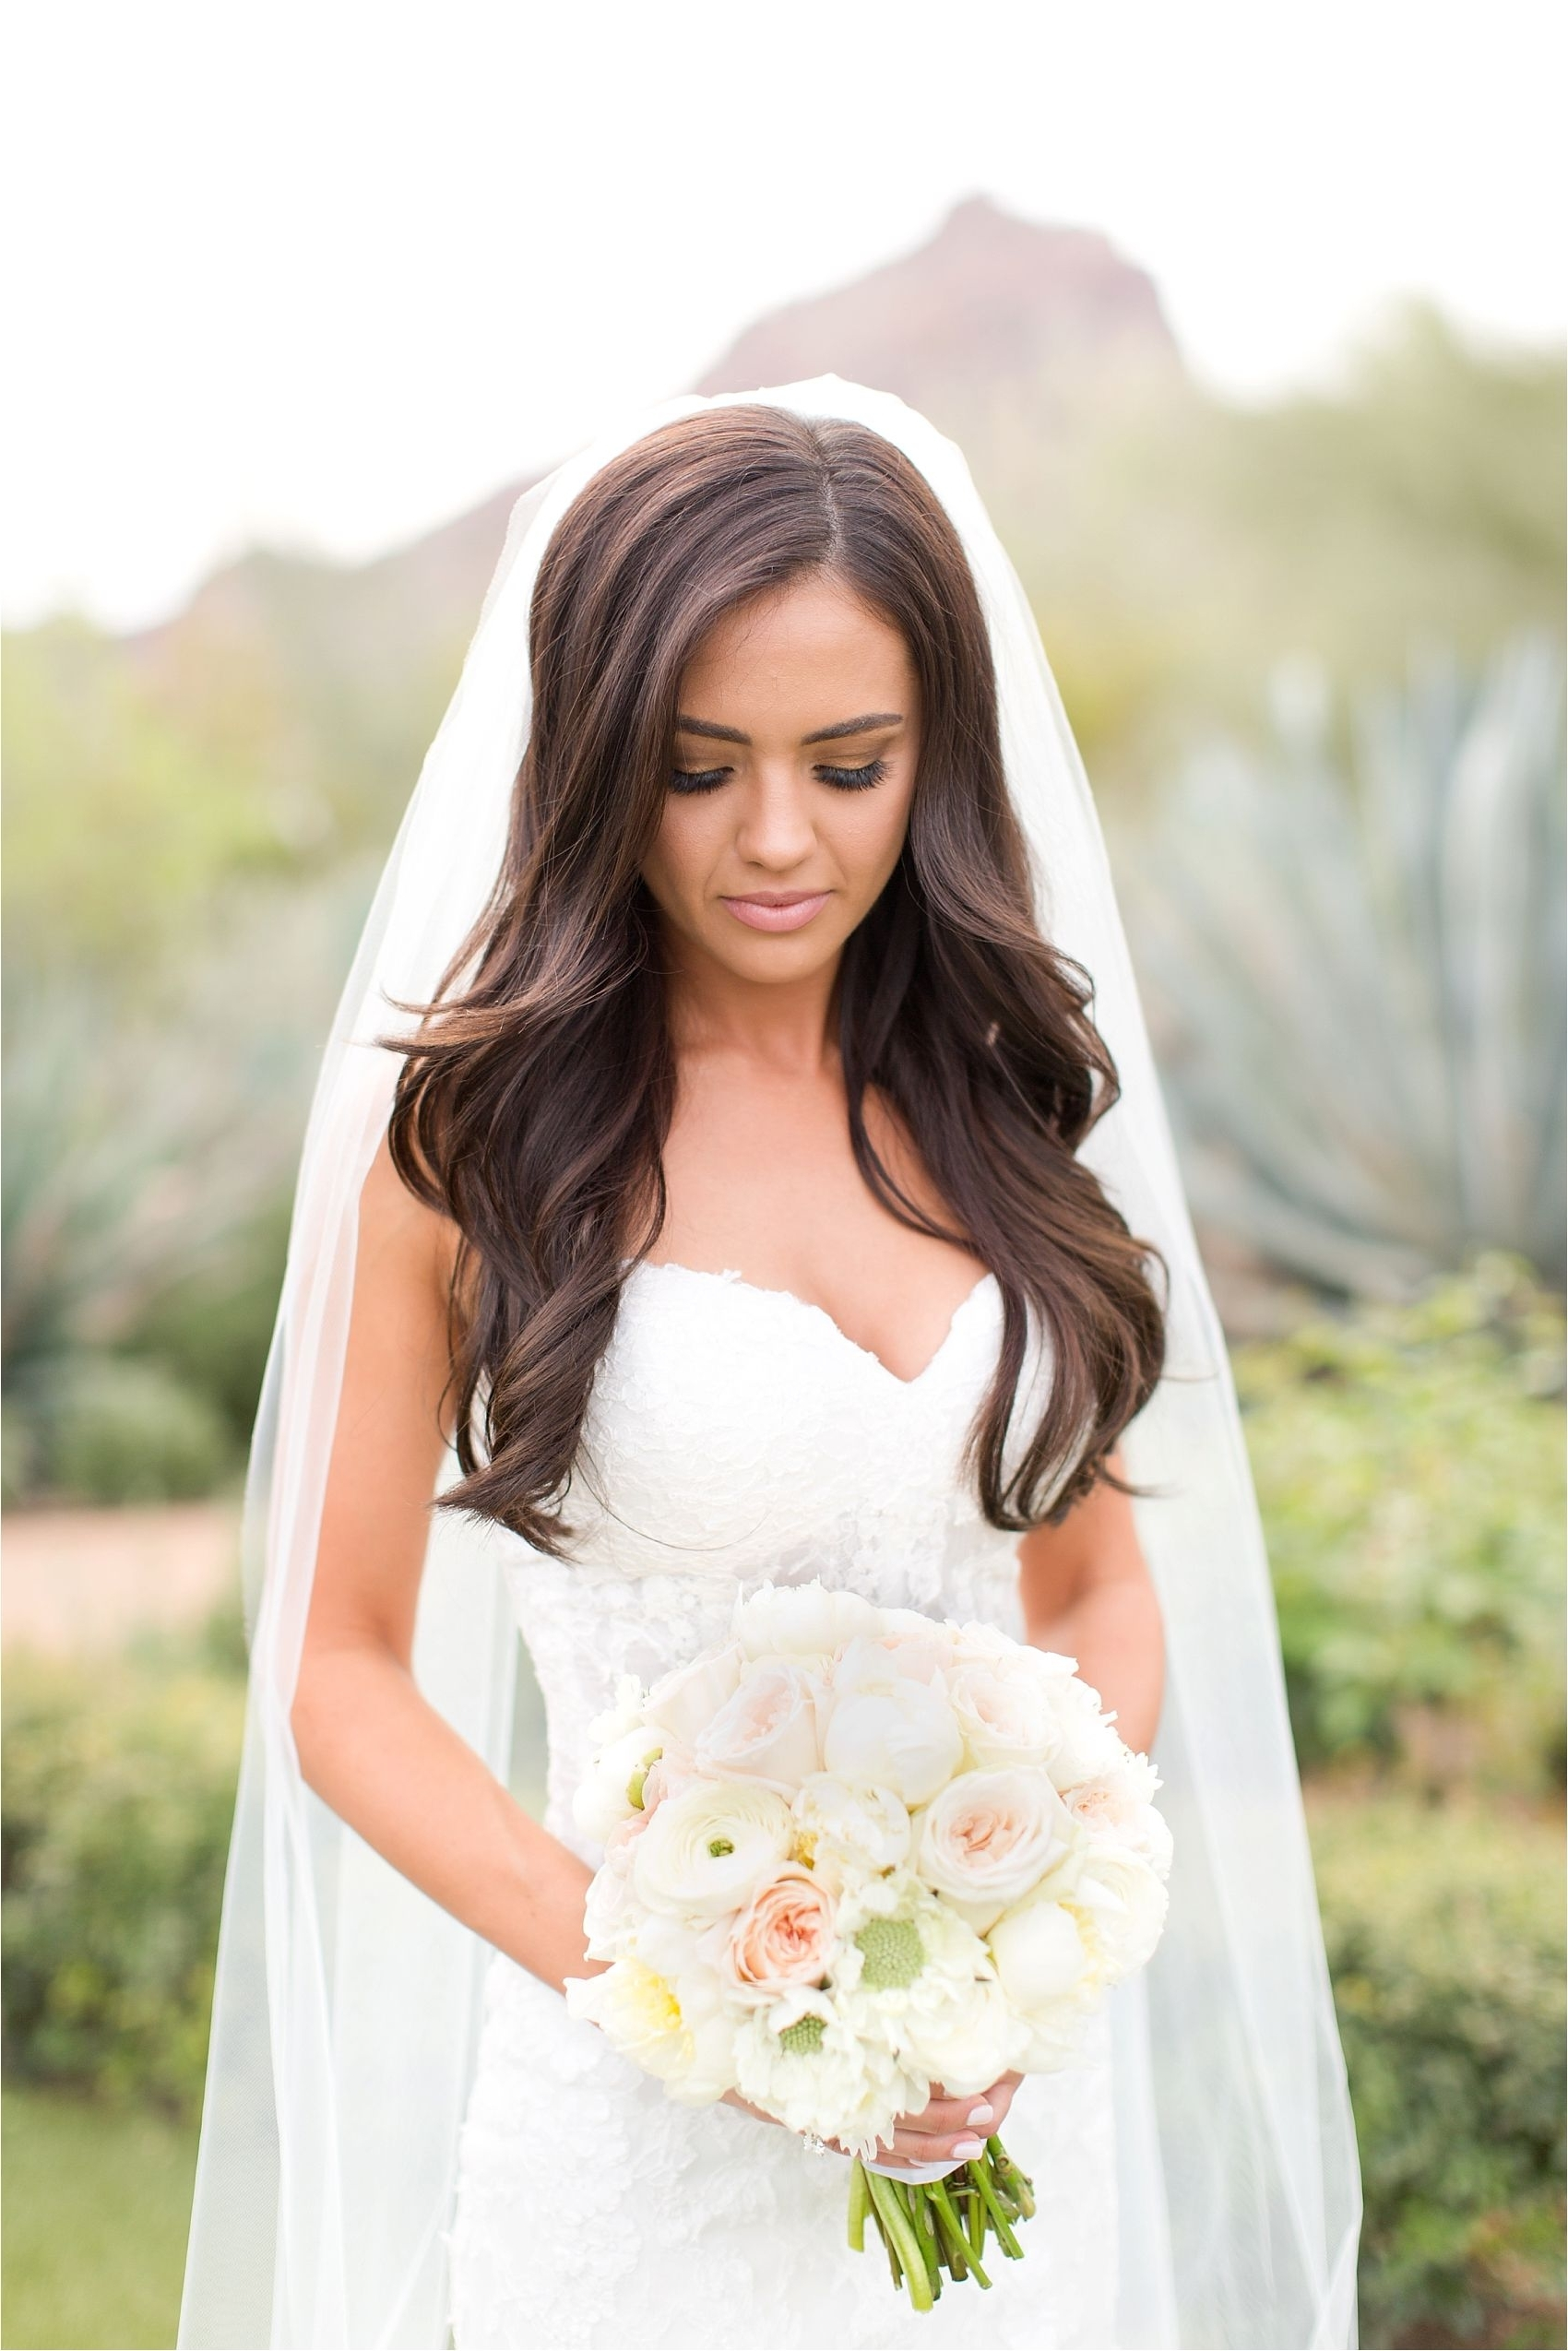 Fashionable Wedding Hairstyles For Long Hair Down With Veil Intended For Blush El Chorro Wedding In Paradise Valley, Arizona (View 2 of 15)